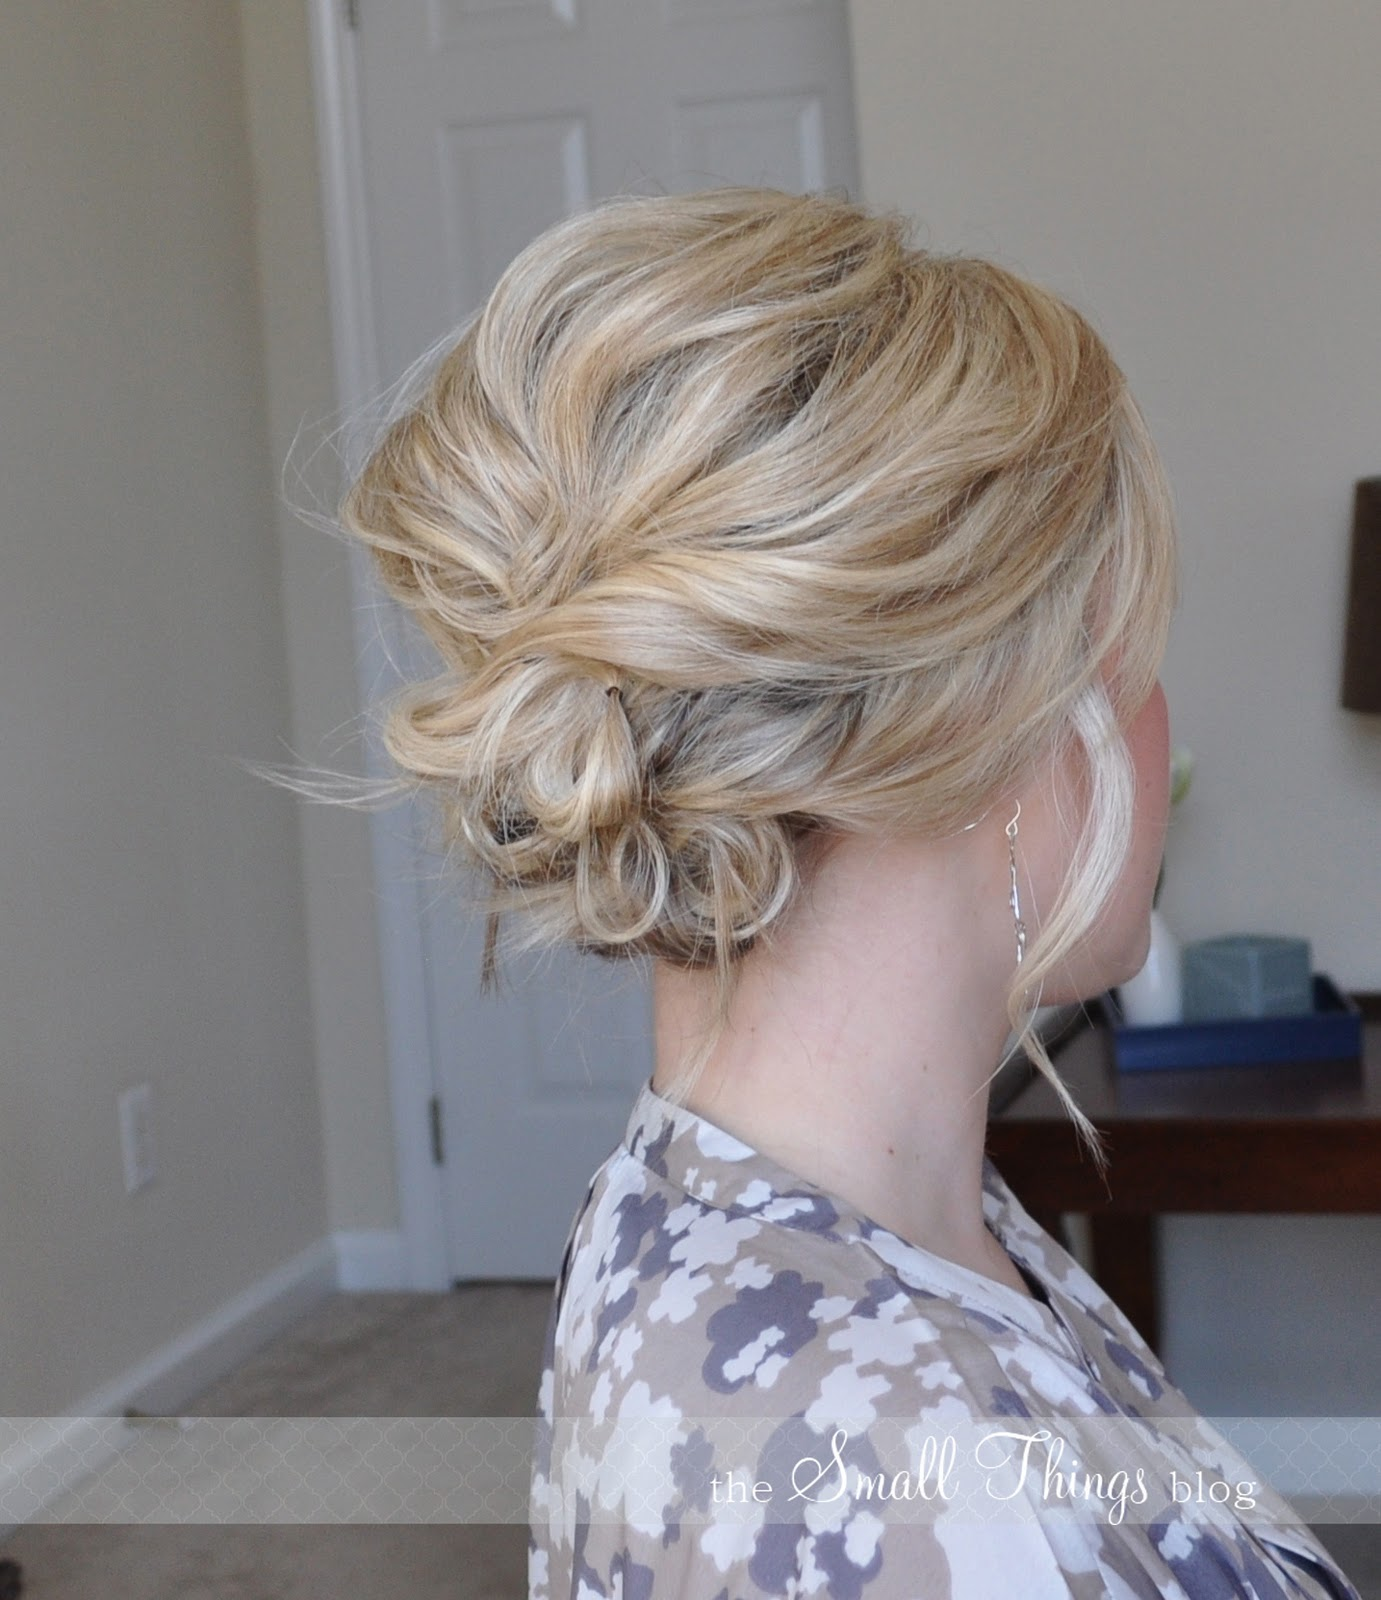 Simple Wedding Hair Ideas: The Small Things Blog